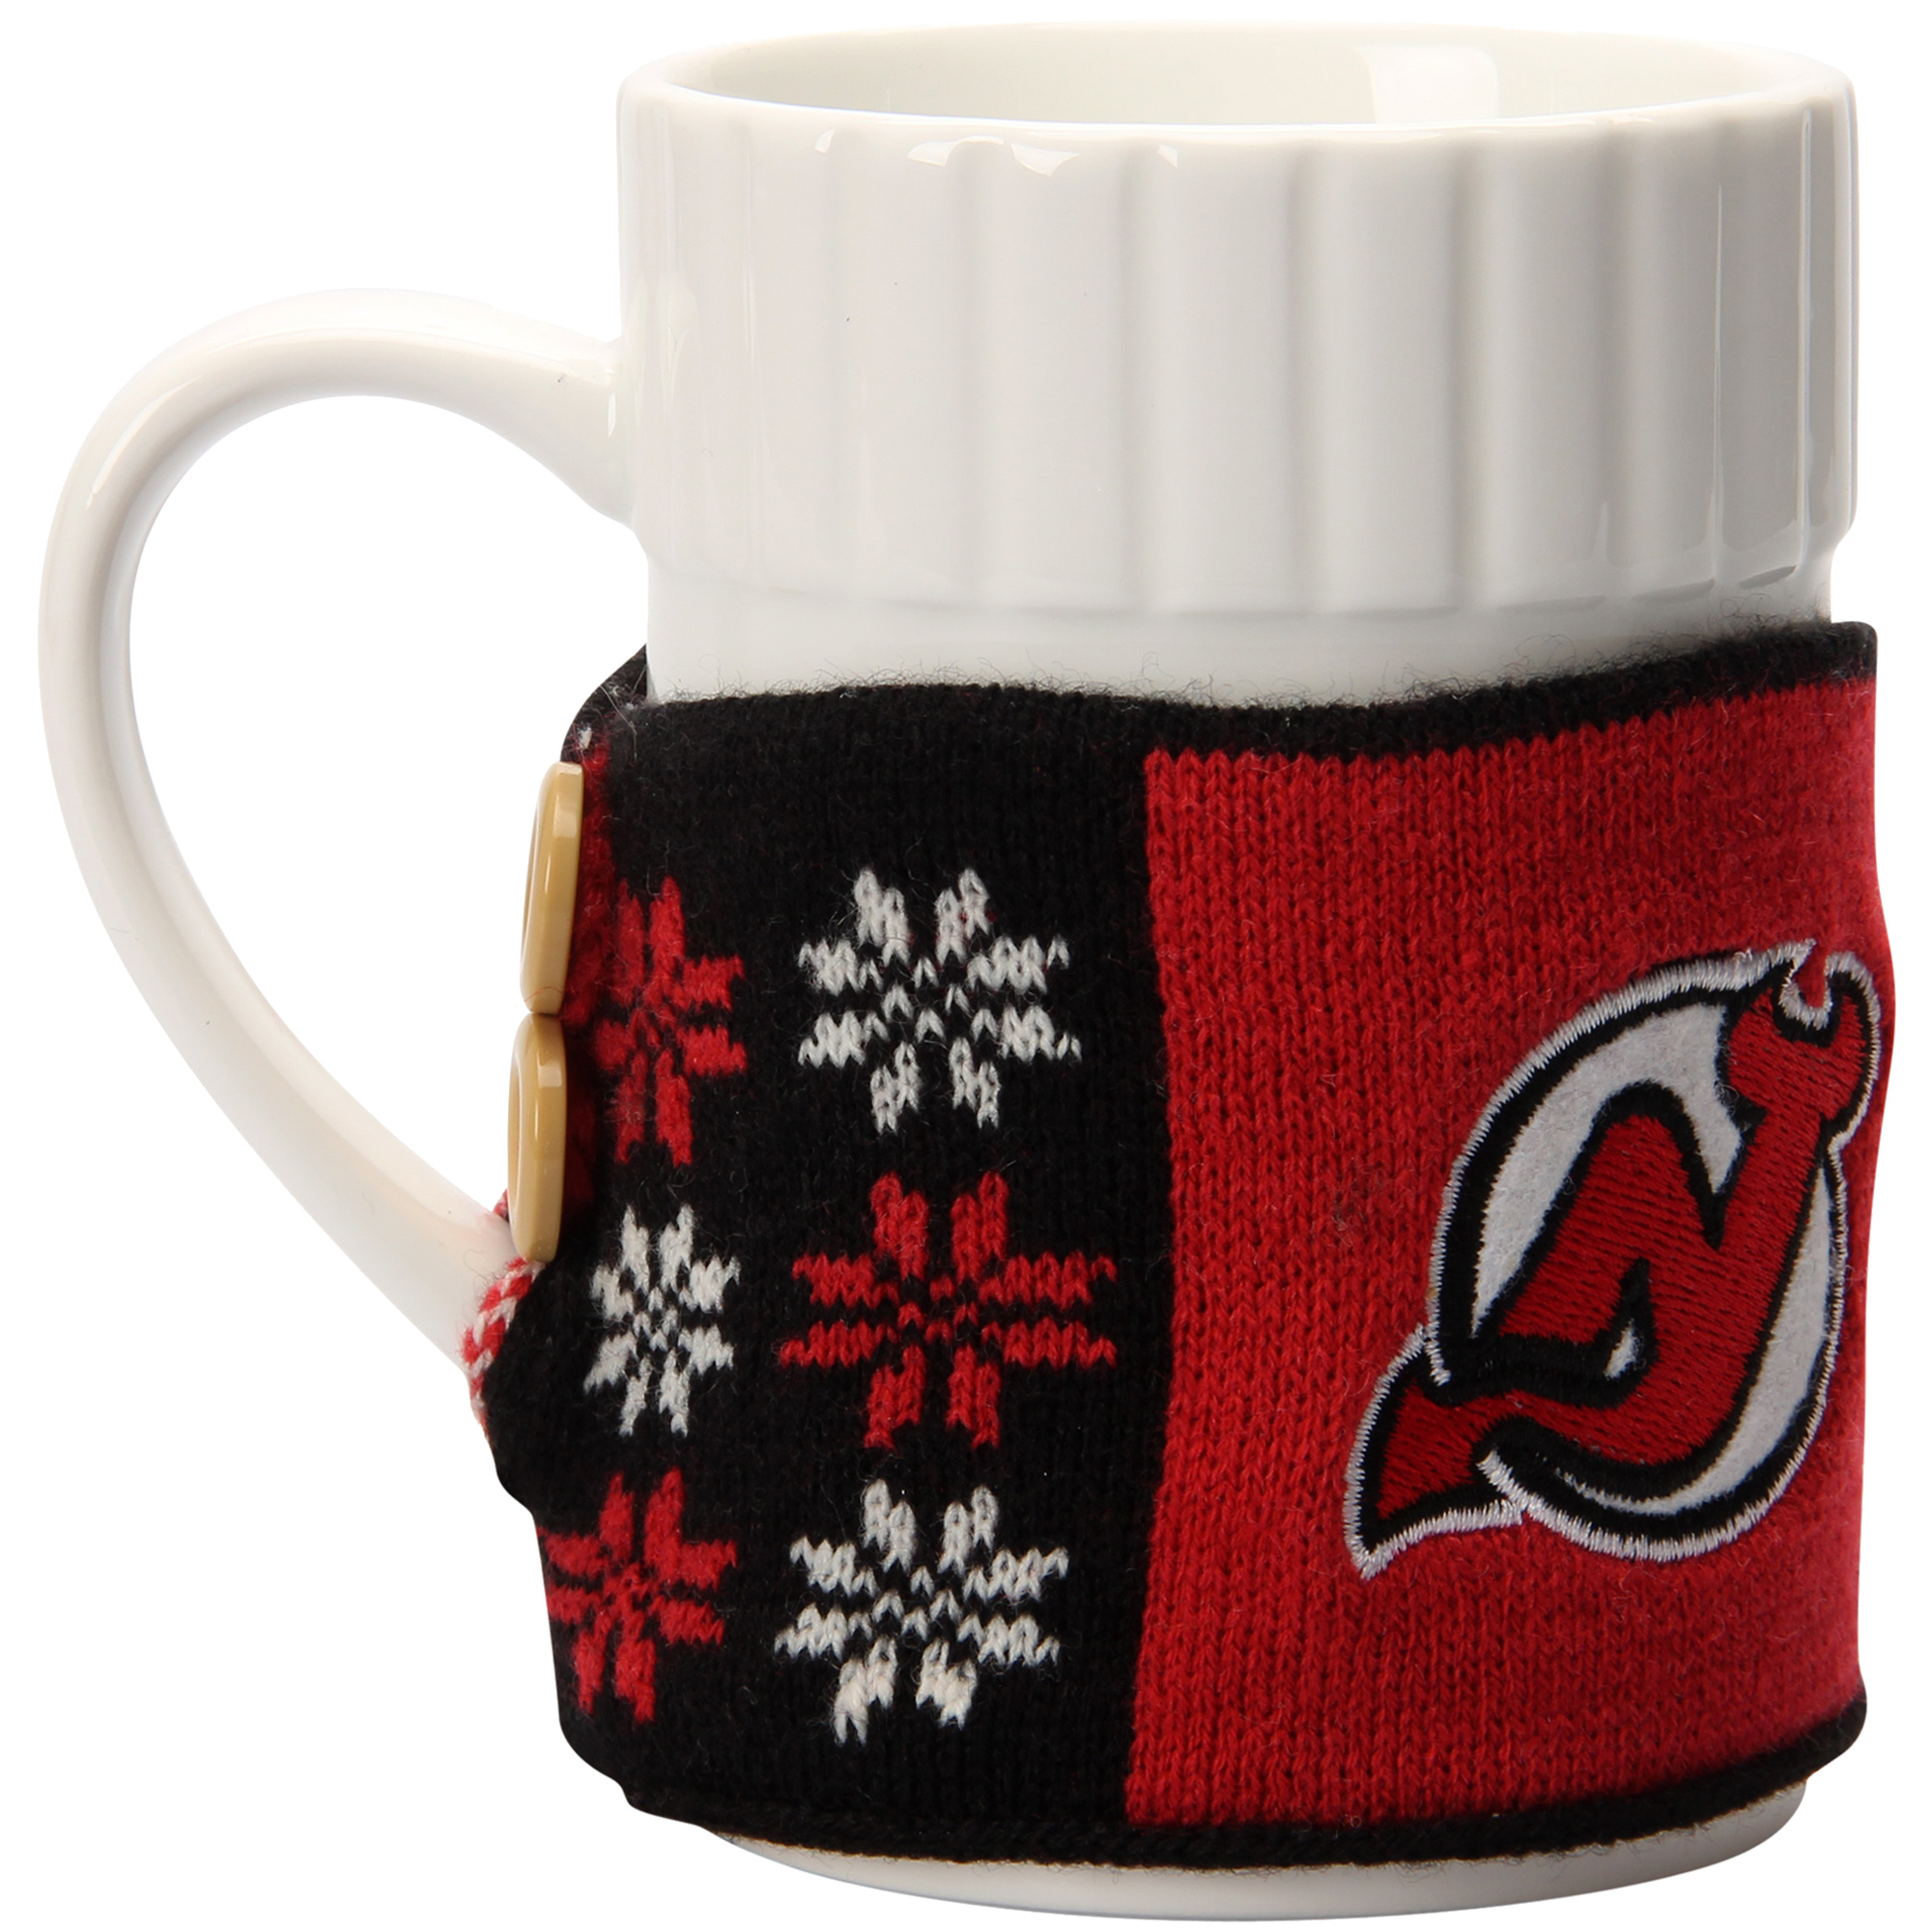 New Jersey Devils 2-Pack Sweater Mugs - No Size